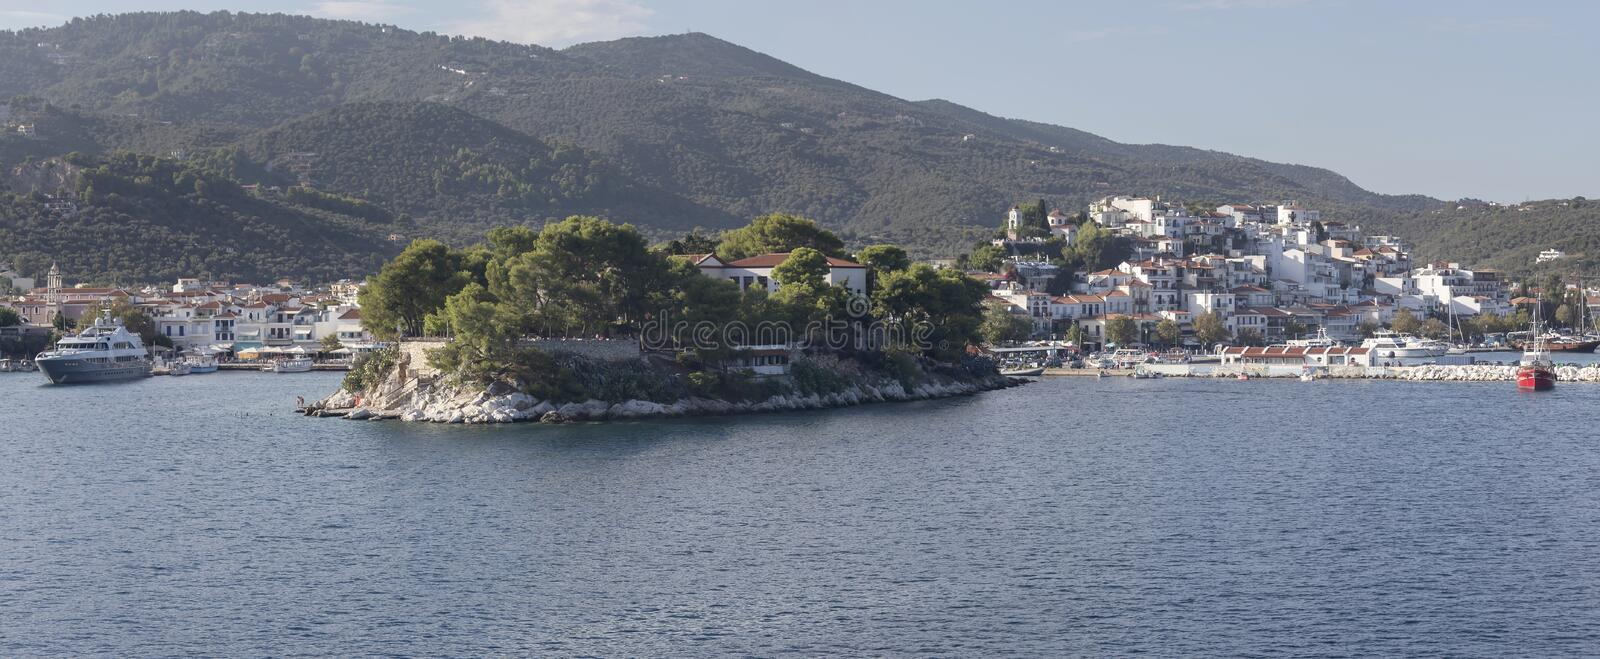 View of the port of the island Skiathos Northern Sporades, Greece. Panoramic view of the port of Skiathos Northern Sporades, Greece, mountains and the sea from a royalty free stock image